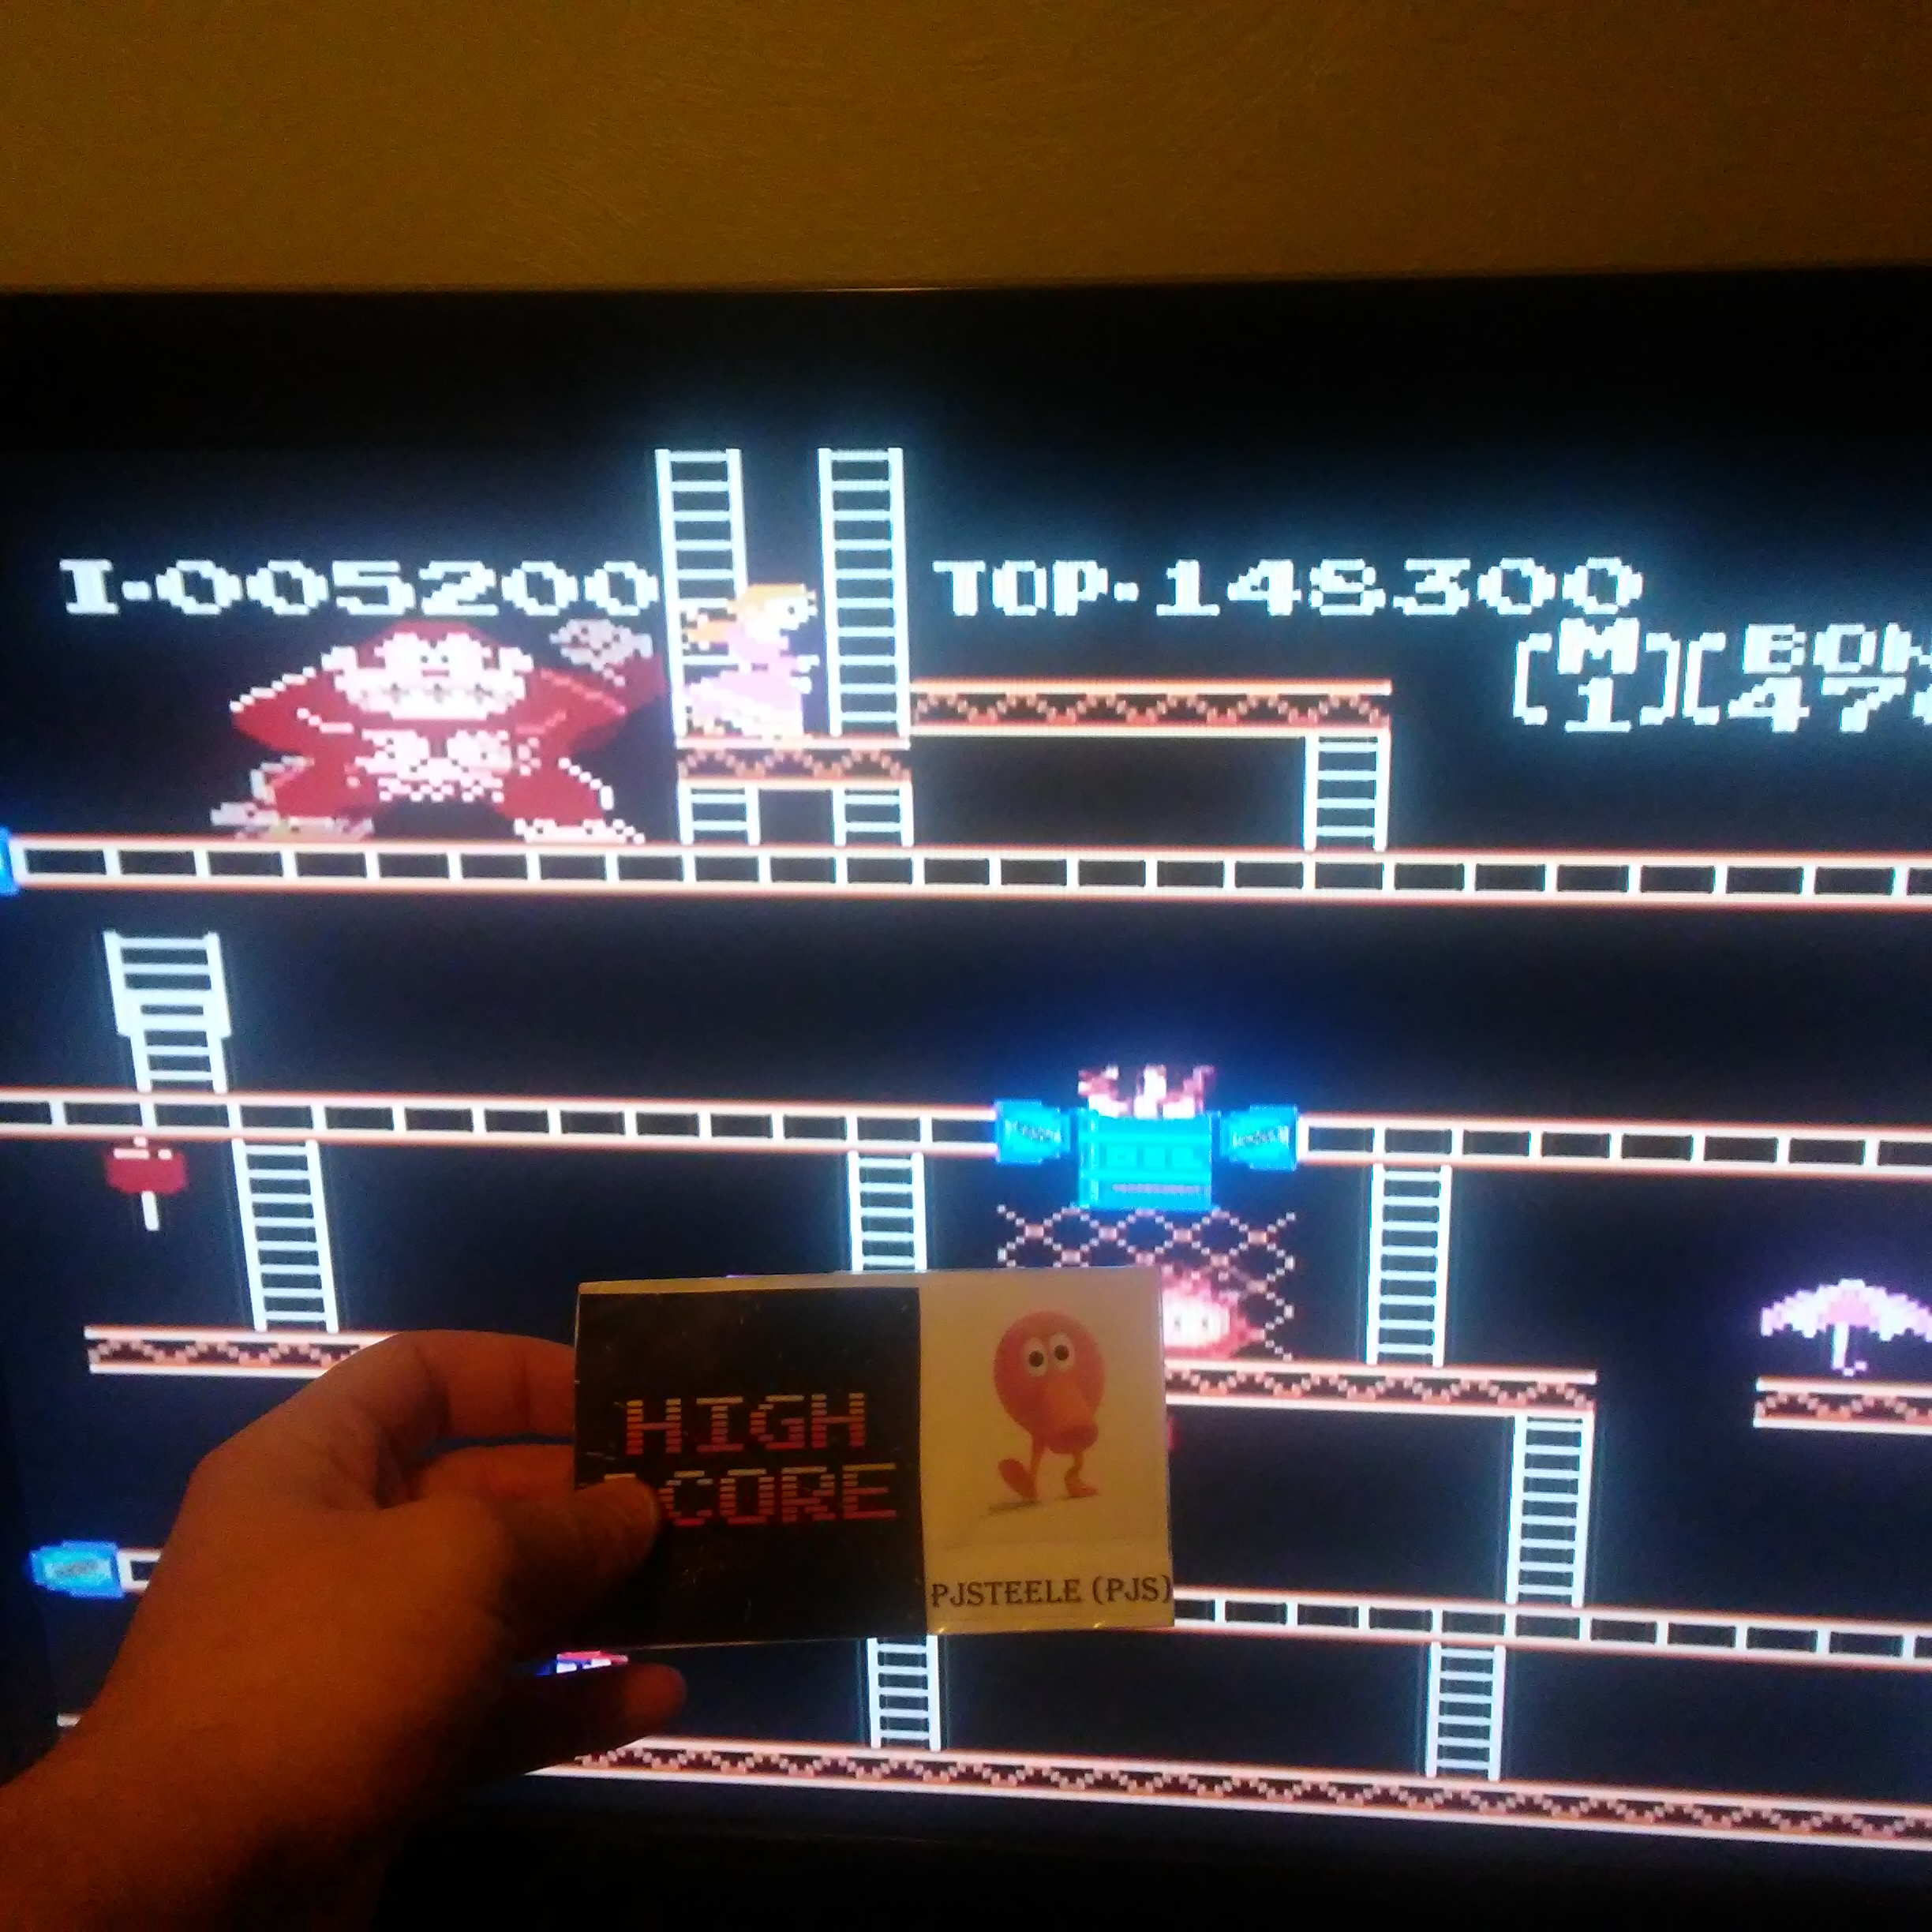 Donkey Kong Original Edition [Game A] 148,300 points